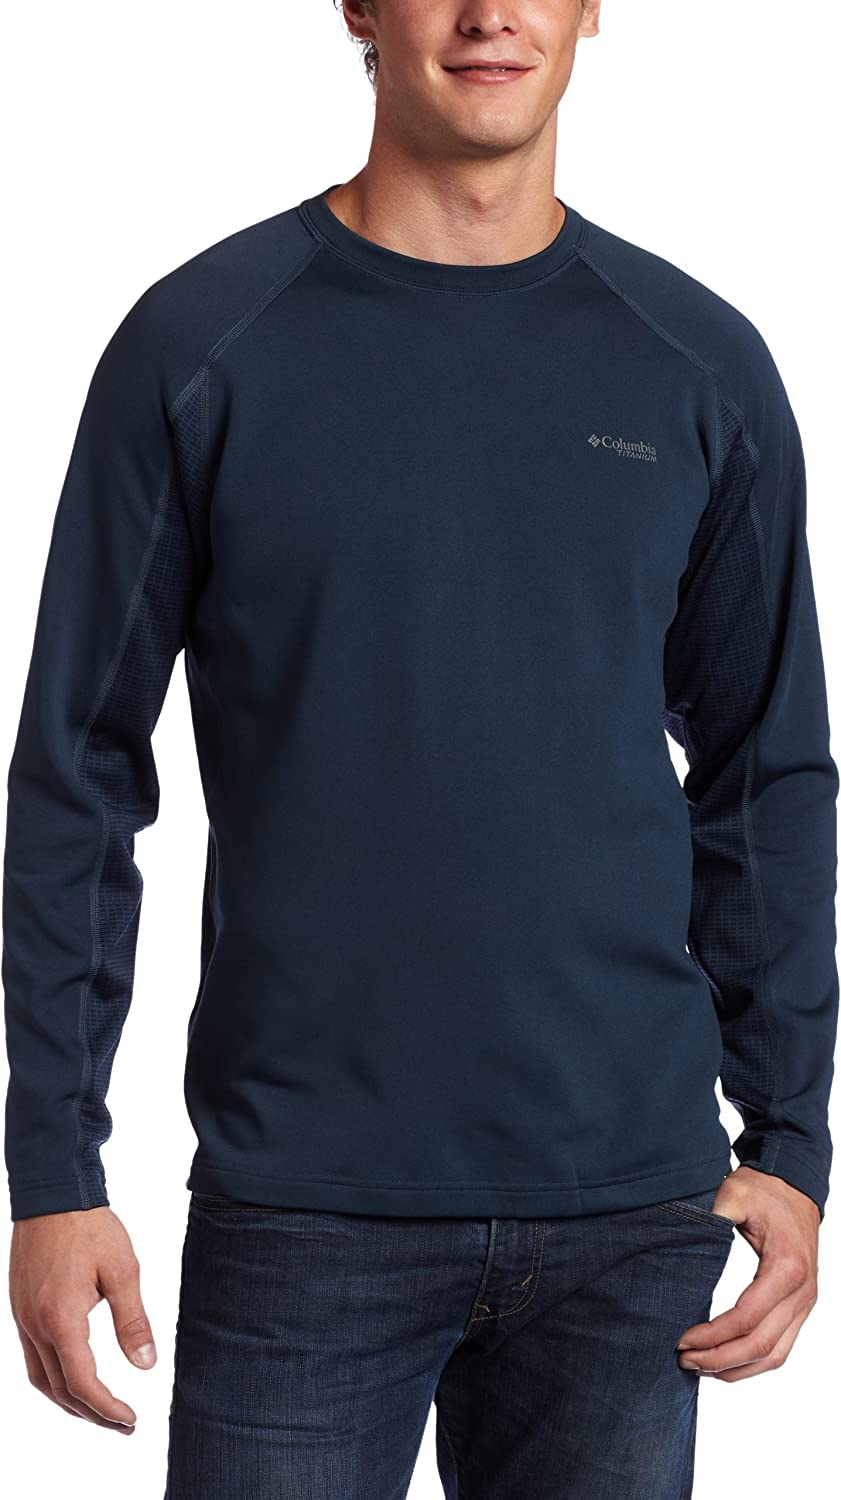 Columbia New products, world's highest quality popular! Men's Mountain Base Max 61% OFF Long Knit Crew Top Sleeve